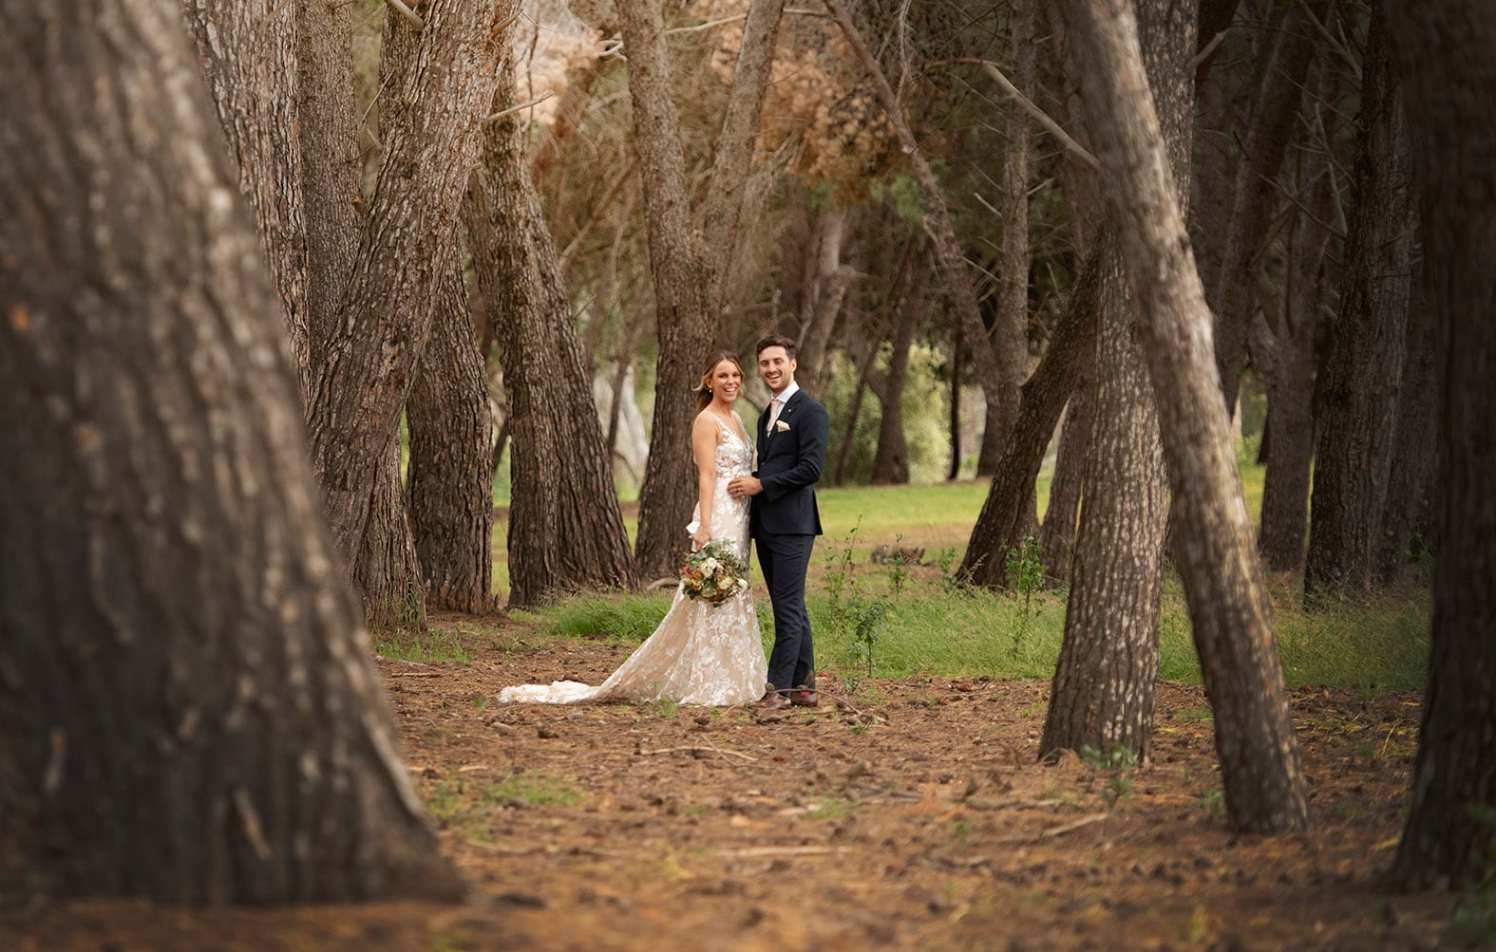 Seppeltsfield winery wedding photography in trees